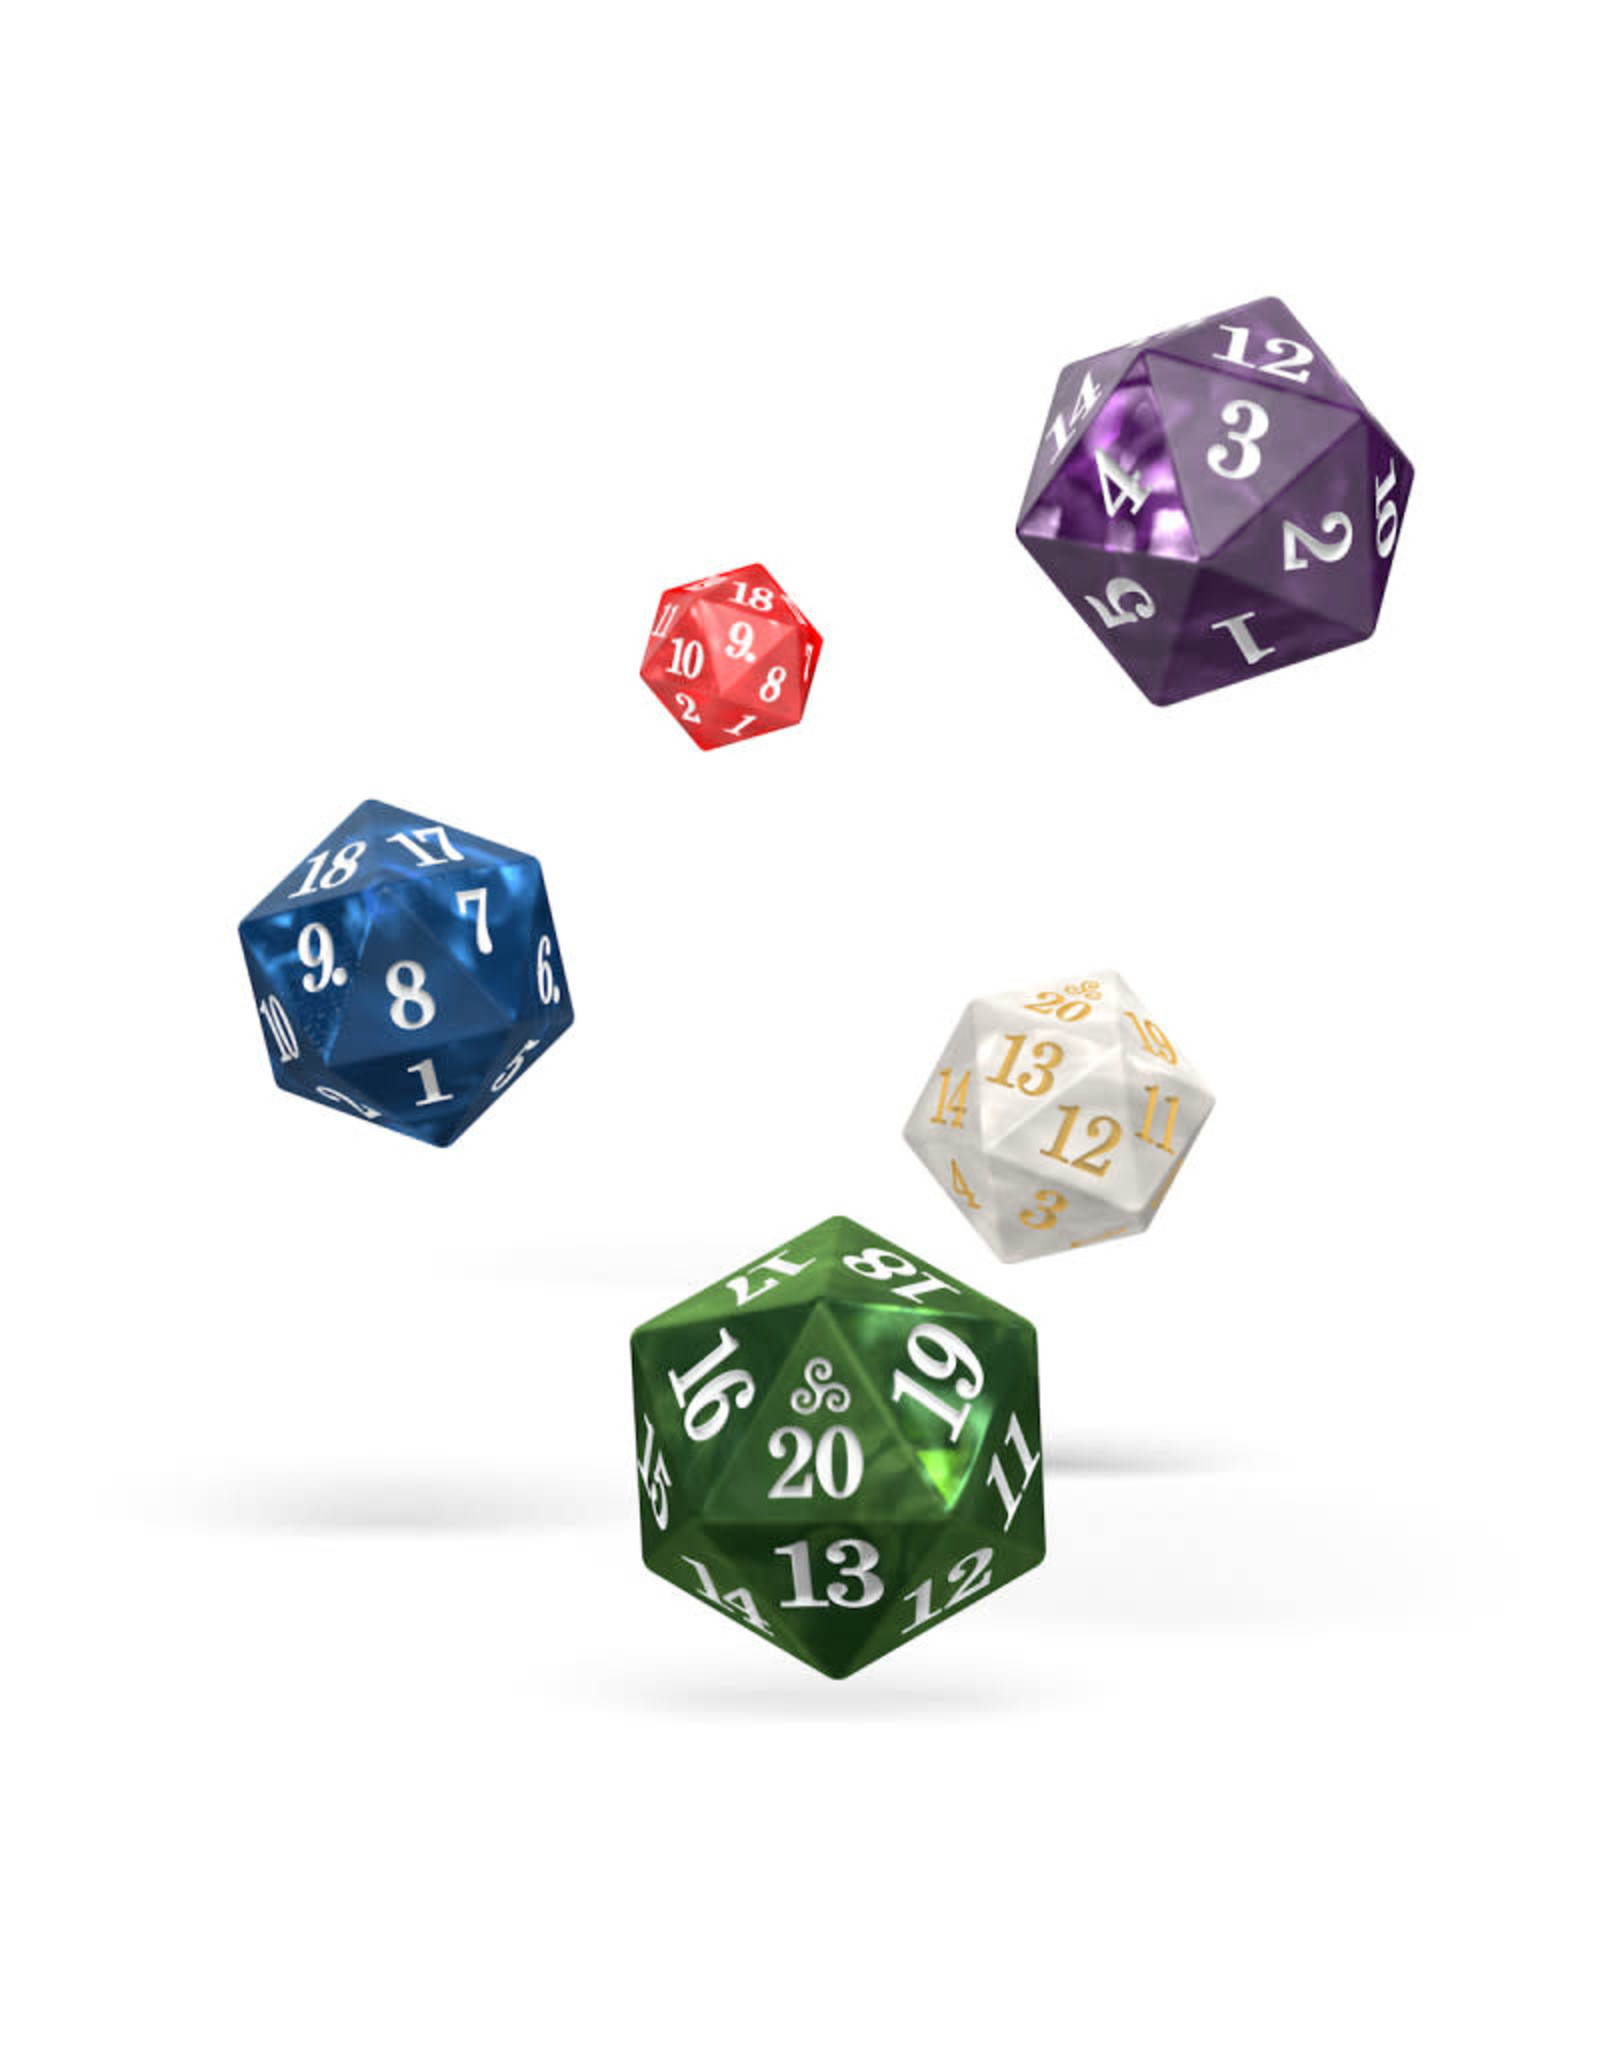 Oakie Doakie Dice H4 OK d20 Set Spindown Marble